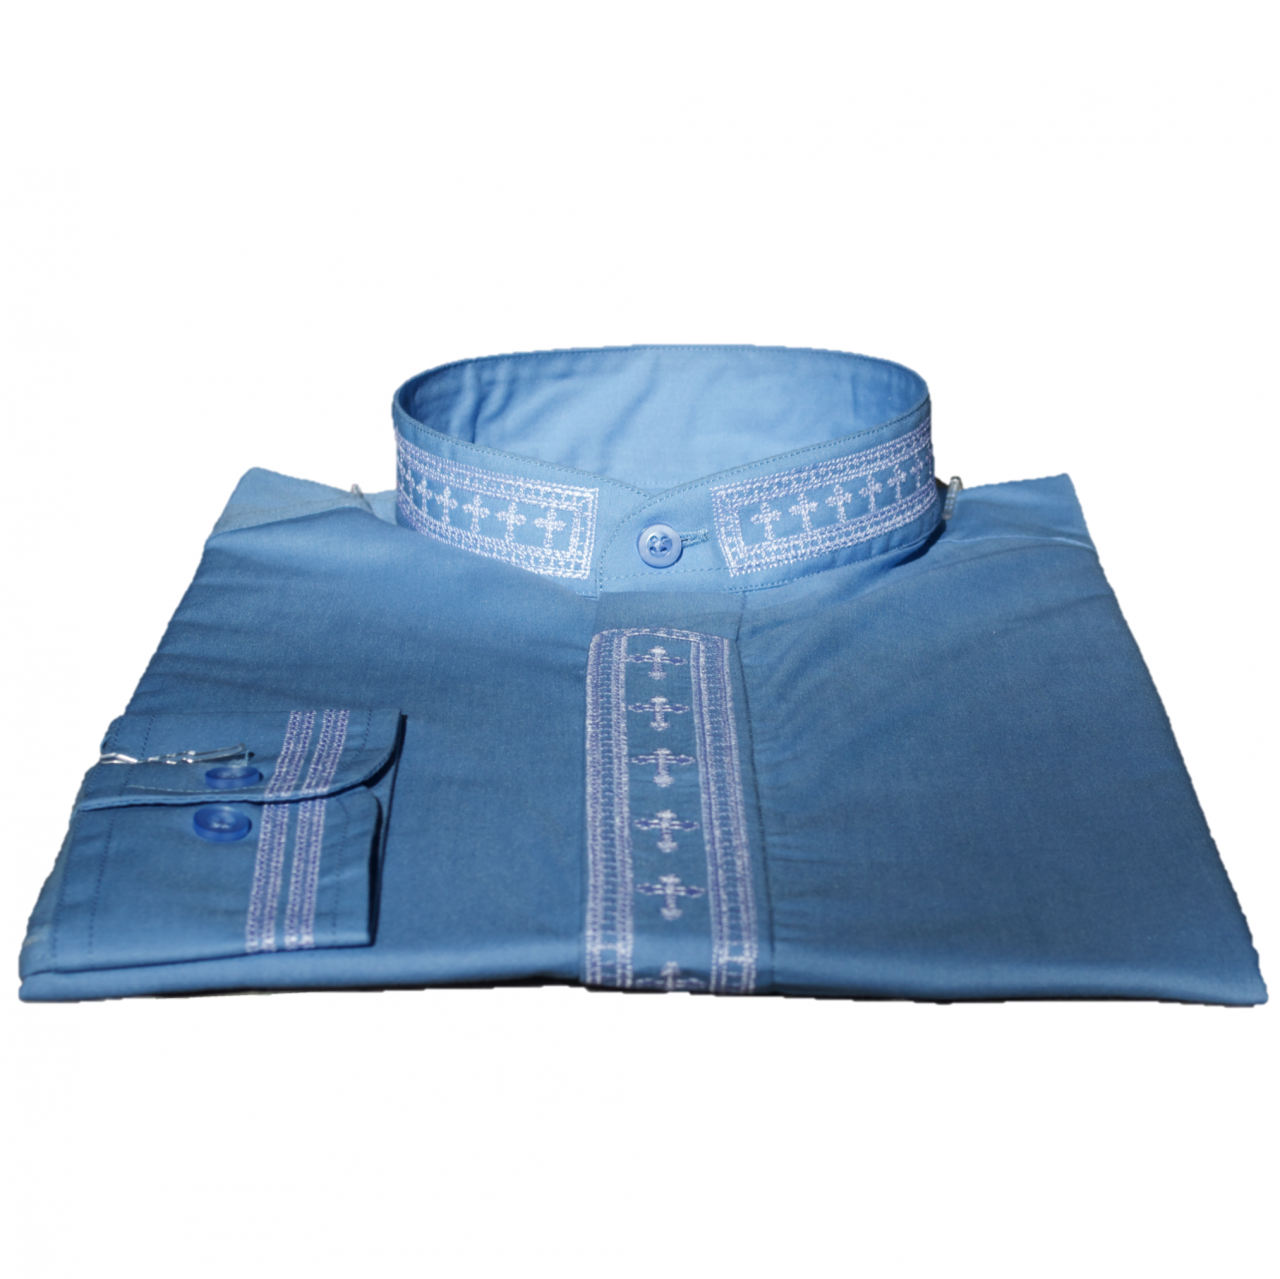 312. Men's Long-Sleeve Clergy Shirt With Fine Embroidery - Light Blue/White